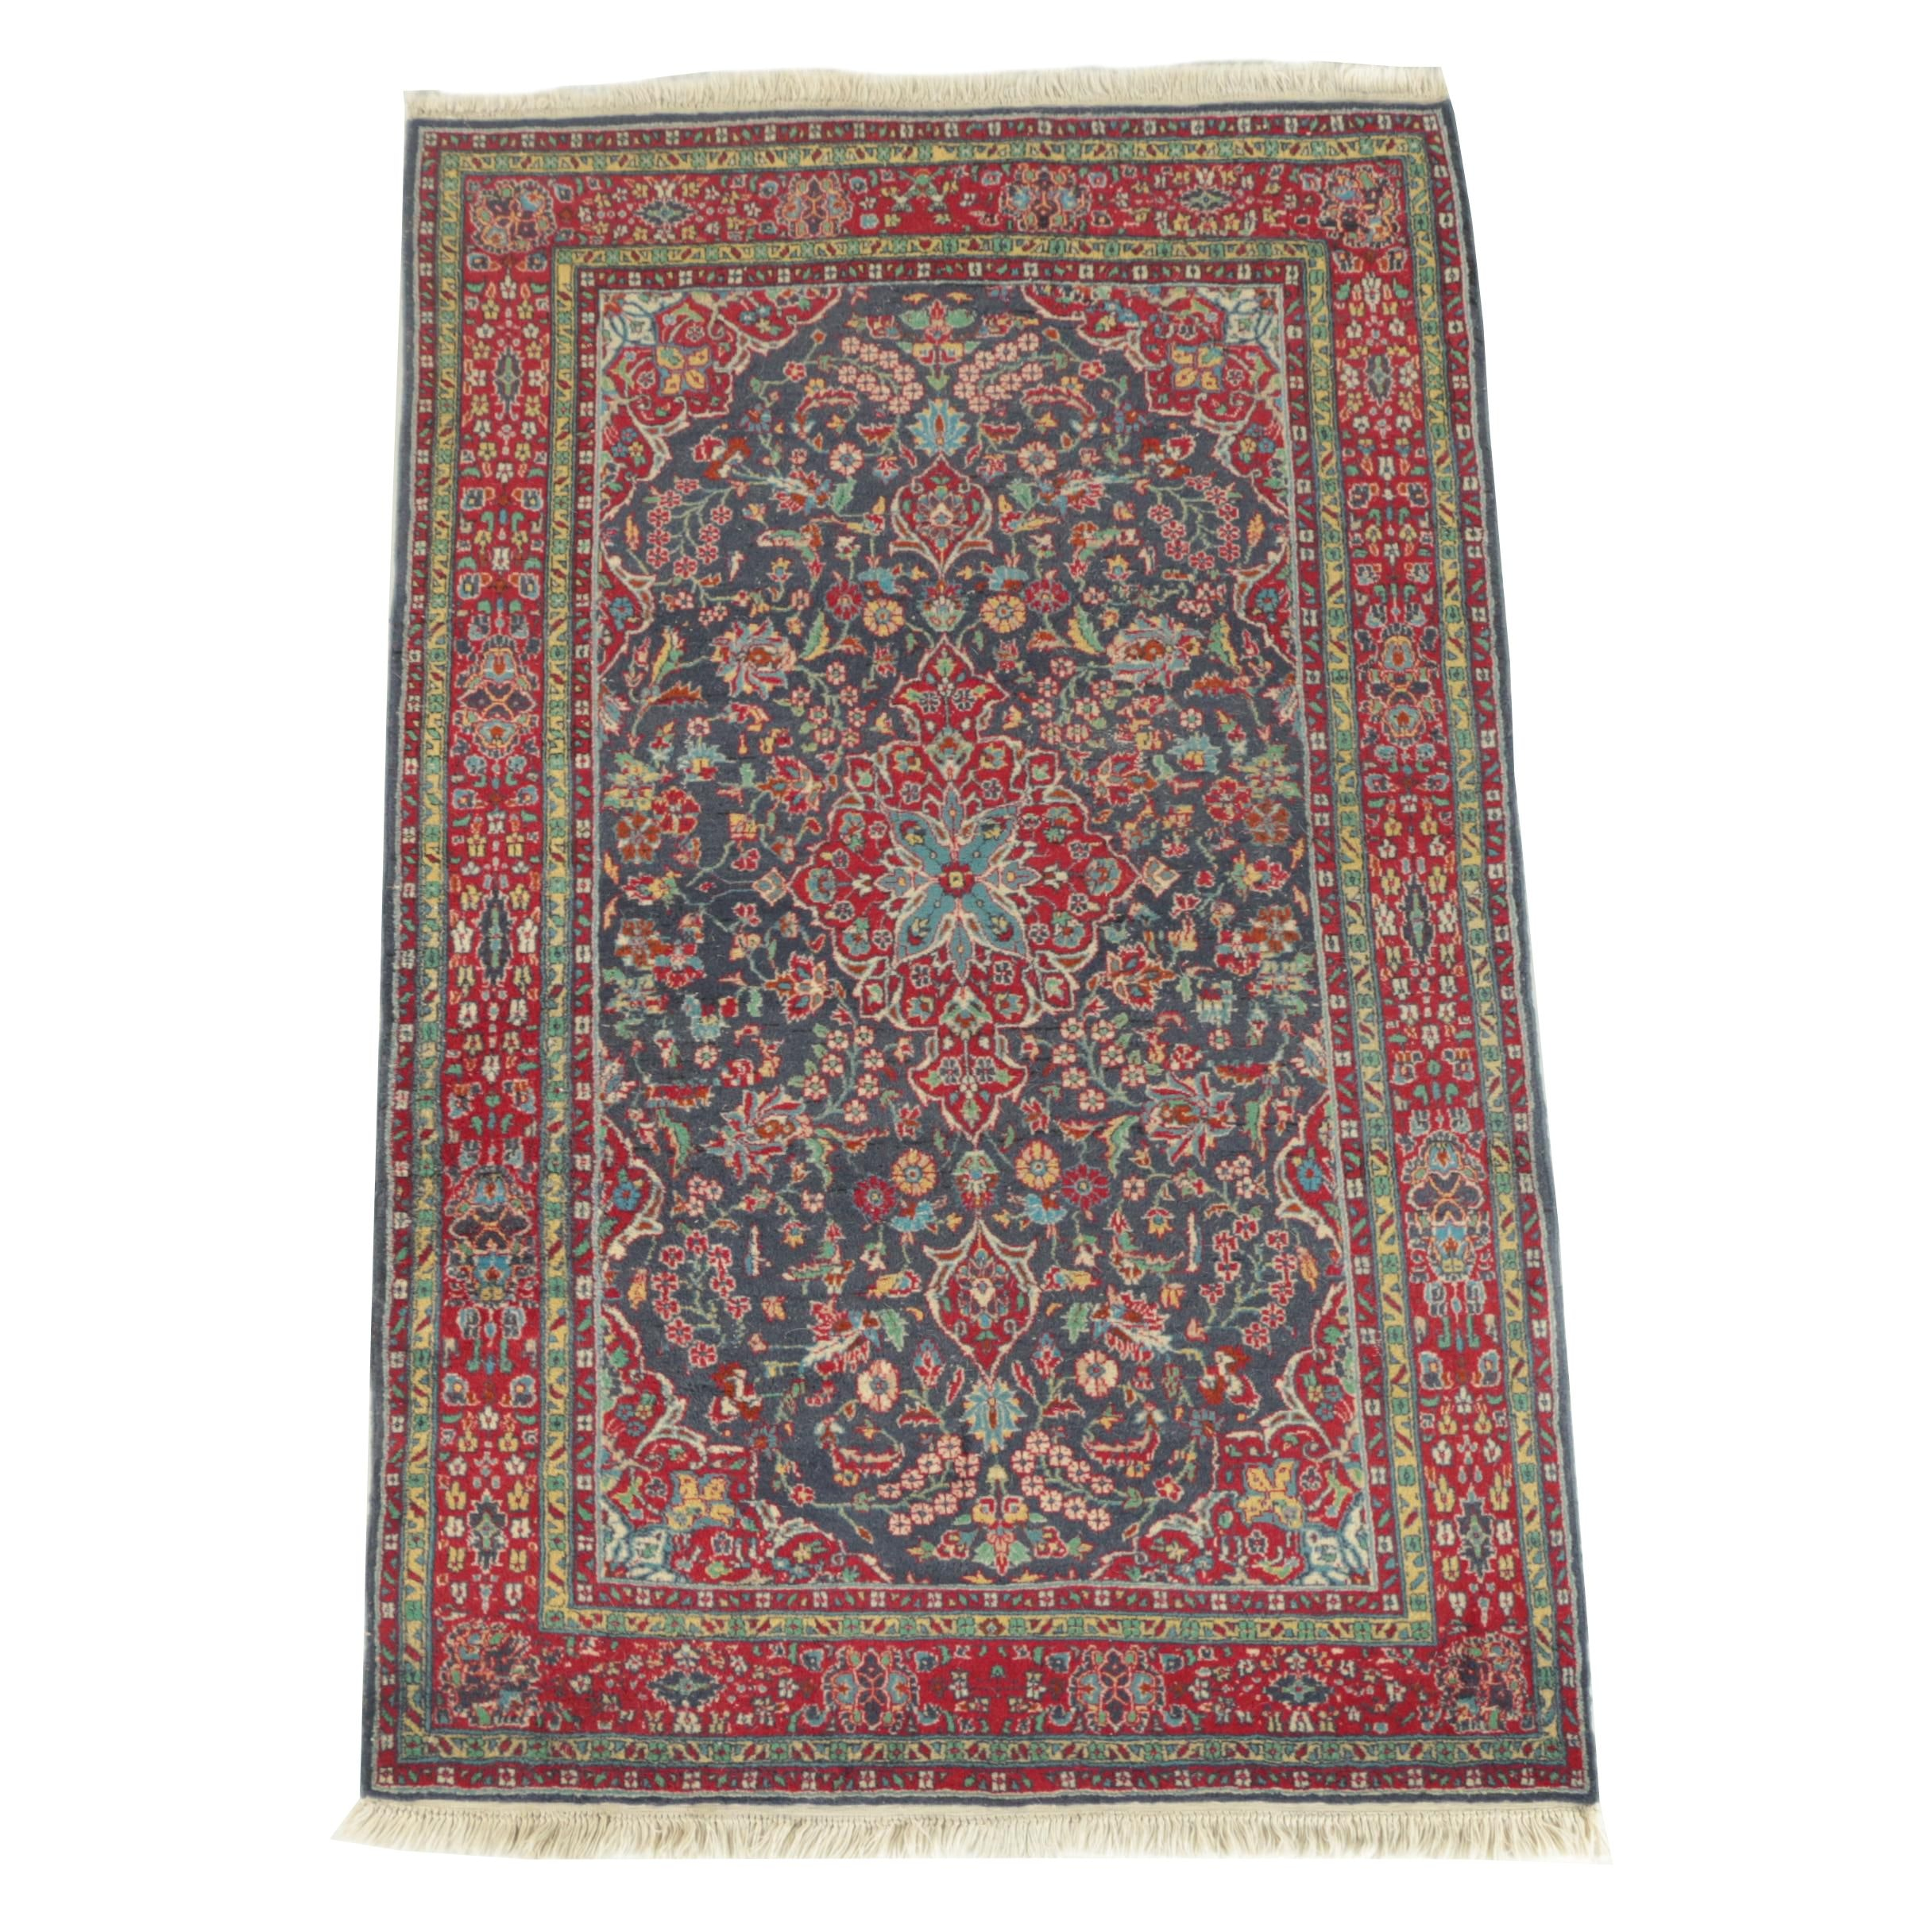 Hand Knotted Indo-Persian Wool Area Rug